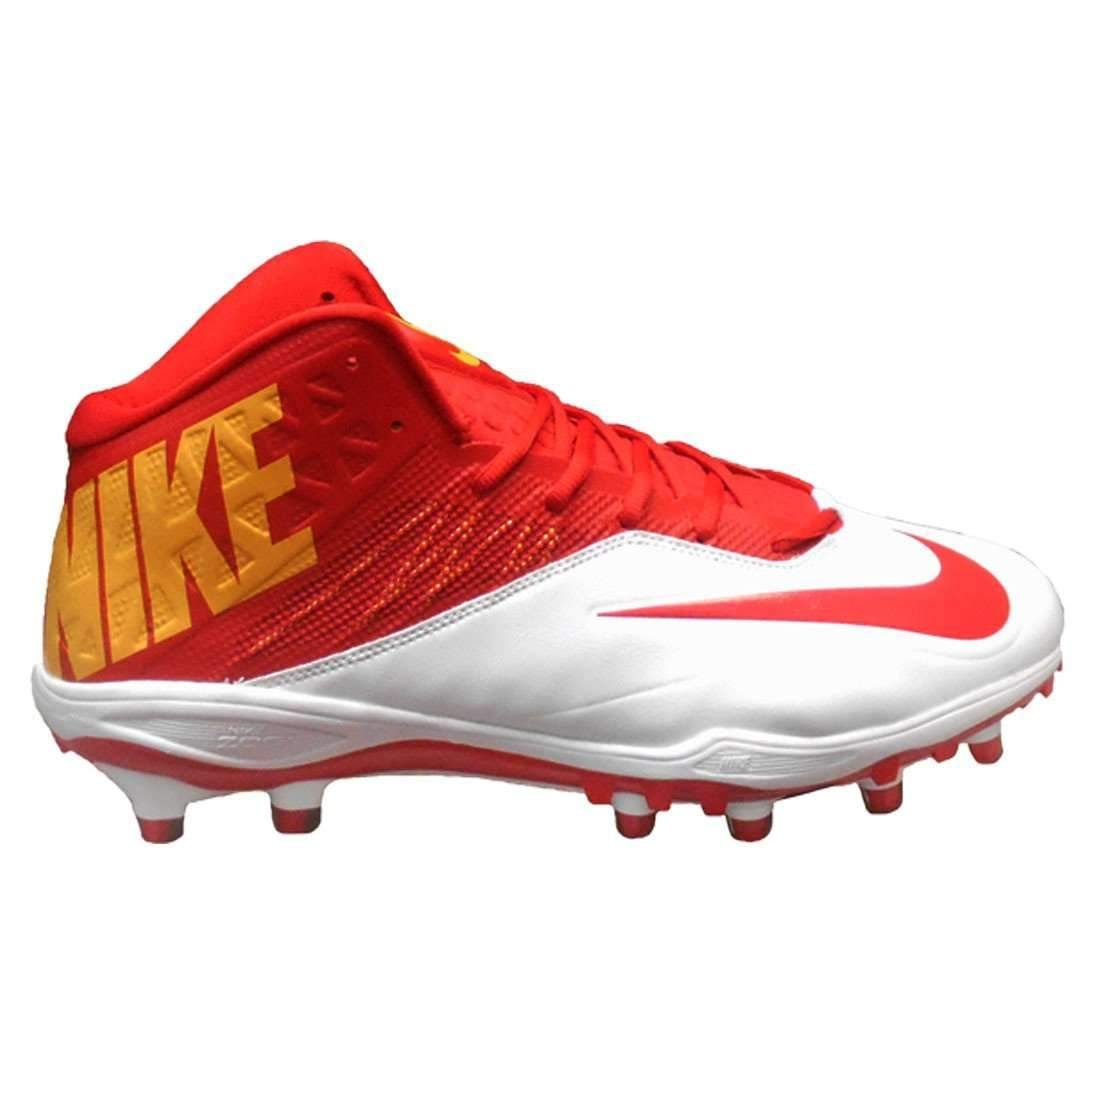 b2d35065165 white nike low top football cleats lebron james strap shoes ...